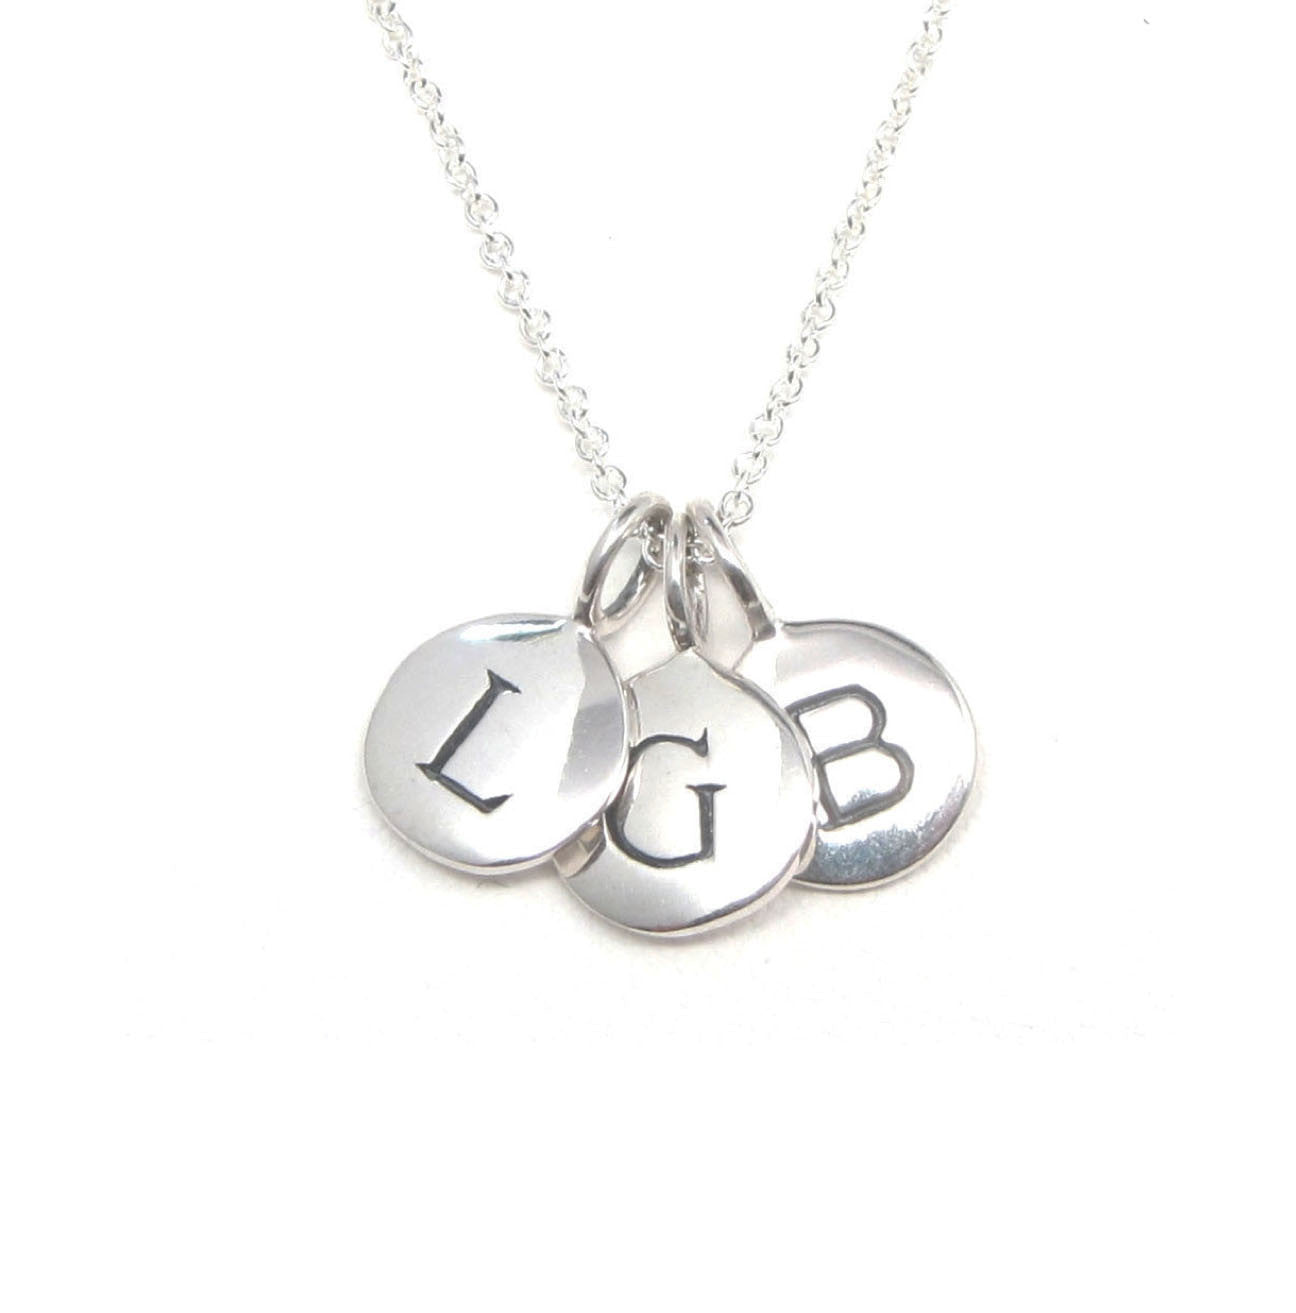 Silver 3 initial charm necklace tangerine jewelry shop silver 3 initial charm necklace mozeypictures Image collections